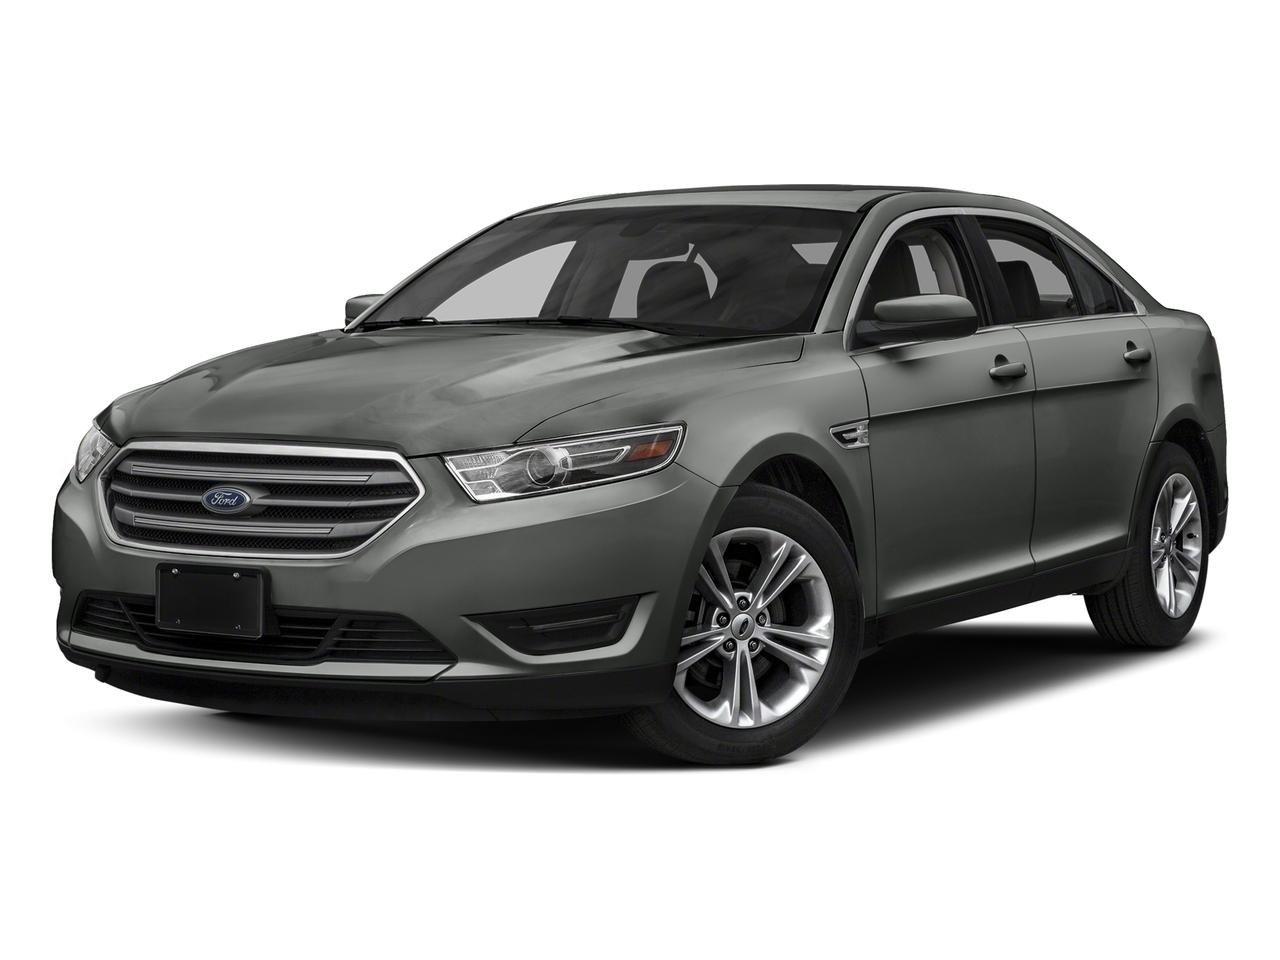 2018 Ford Taurus Vehicle Photo in Elyria, OH 44035